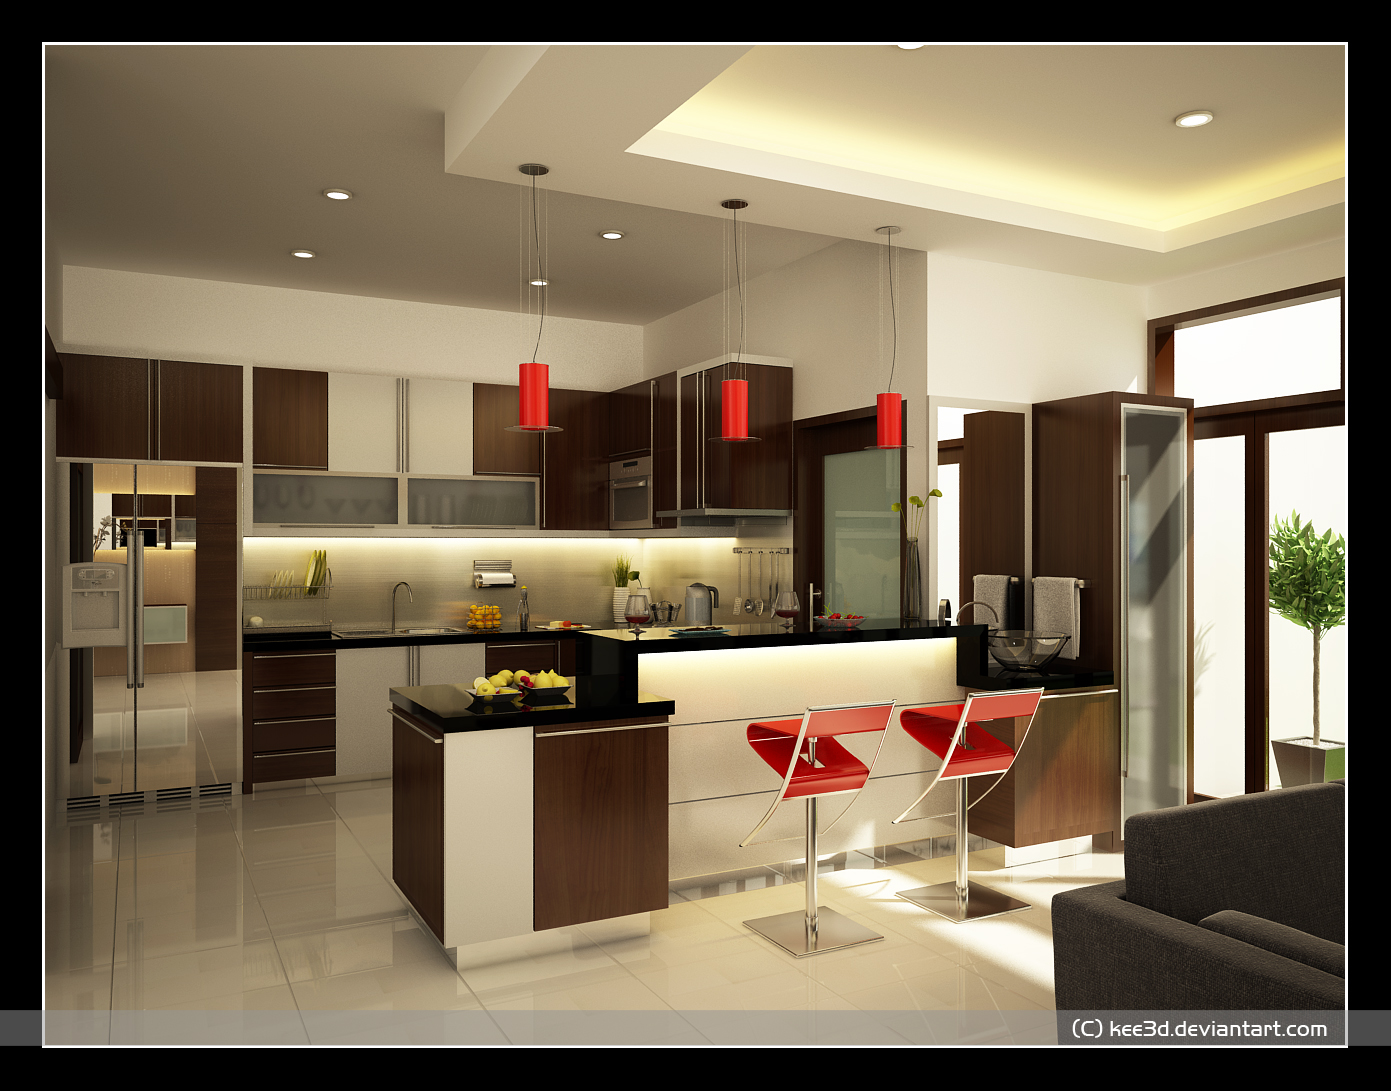 by octo brilian - Kitchenette Design Ideas